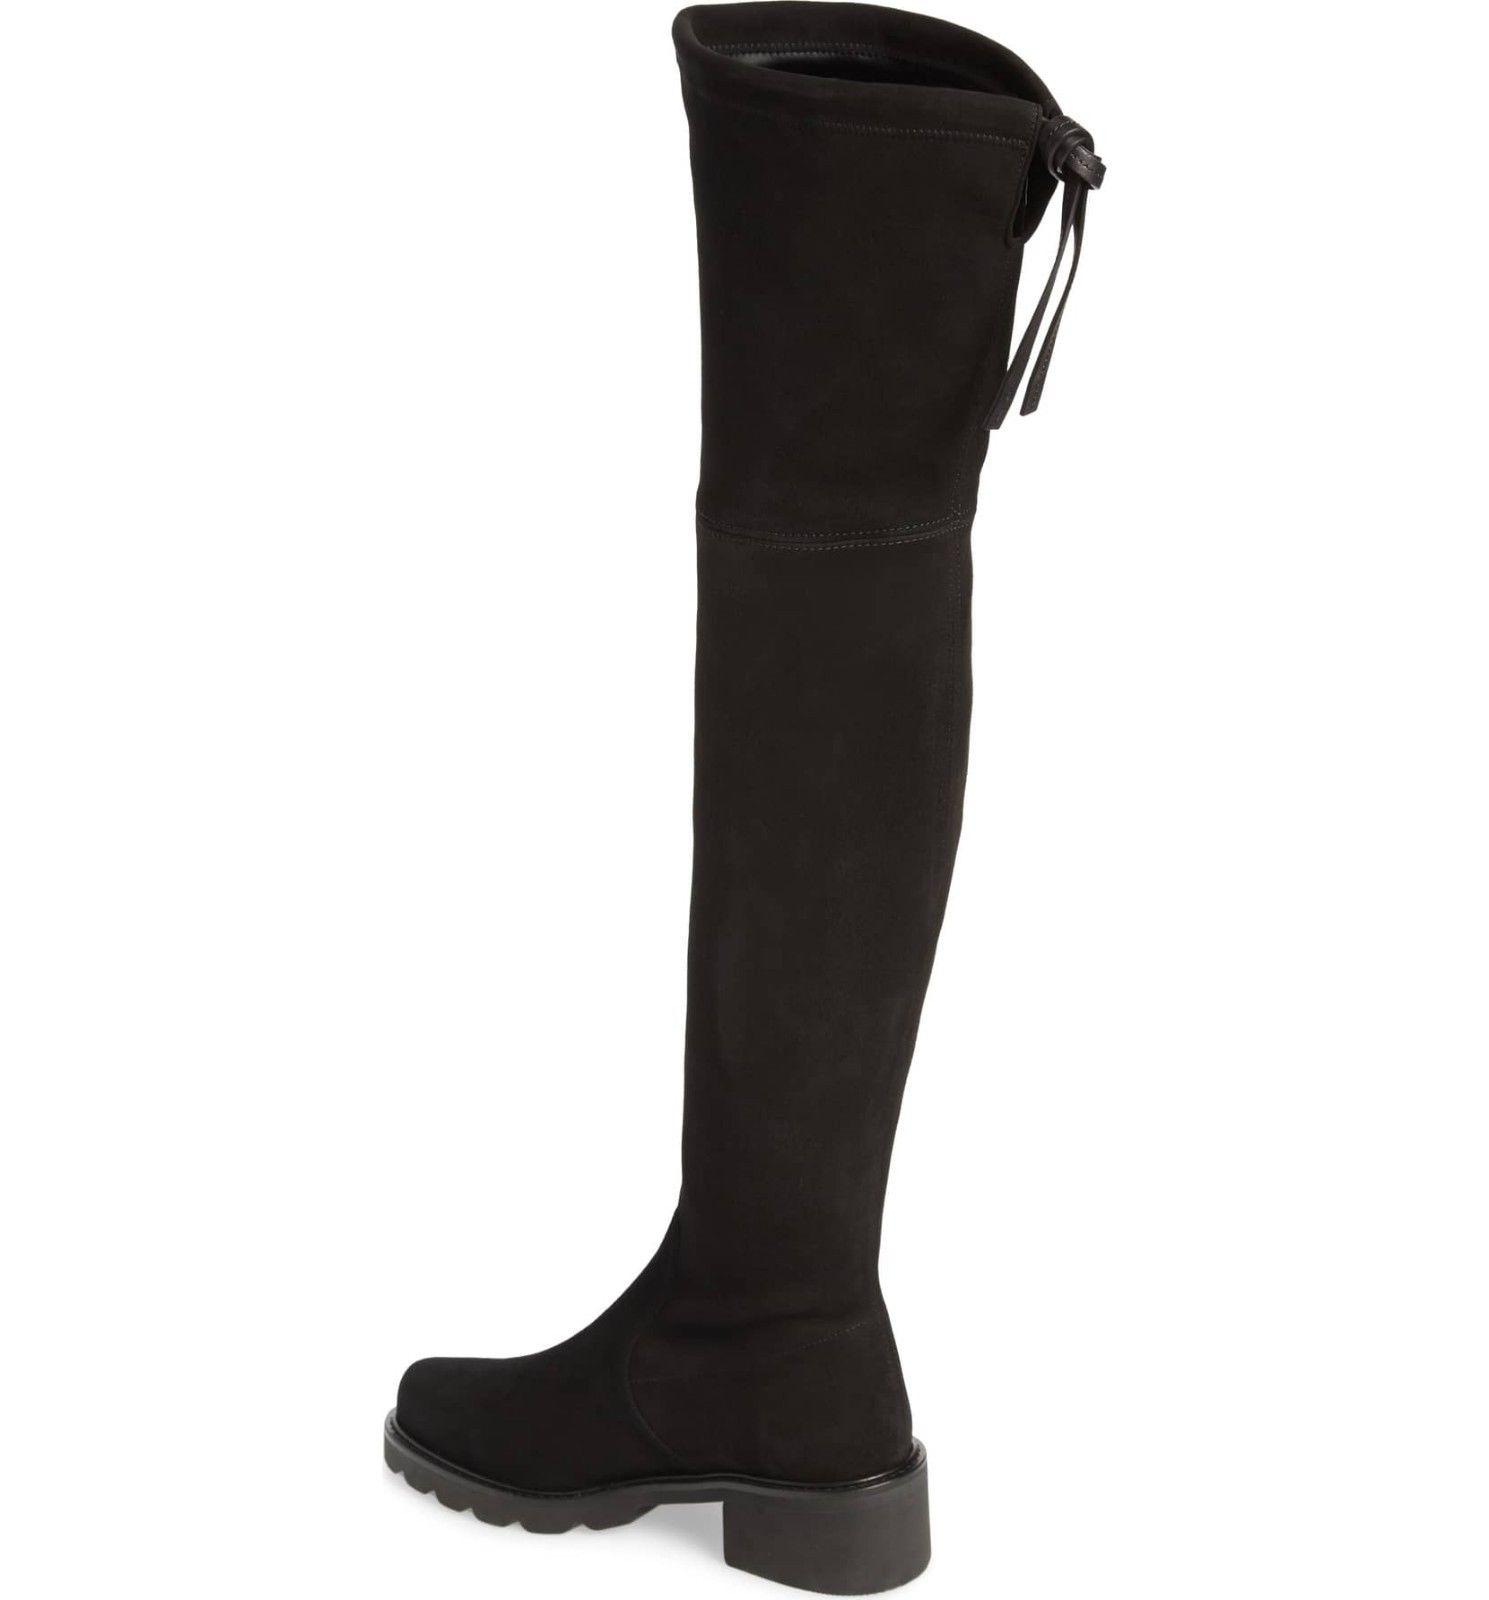 Knee Boots Thigh High Booties 9.5 Black